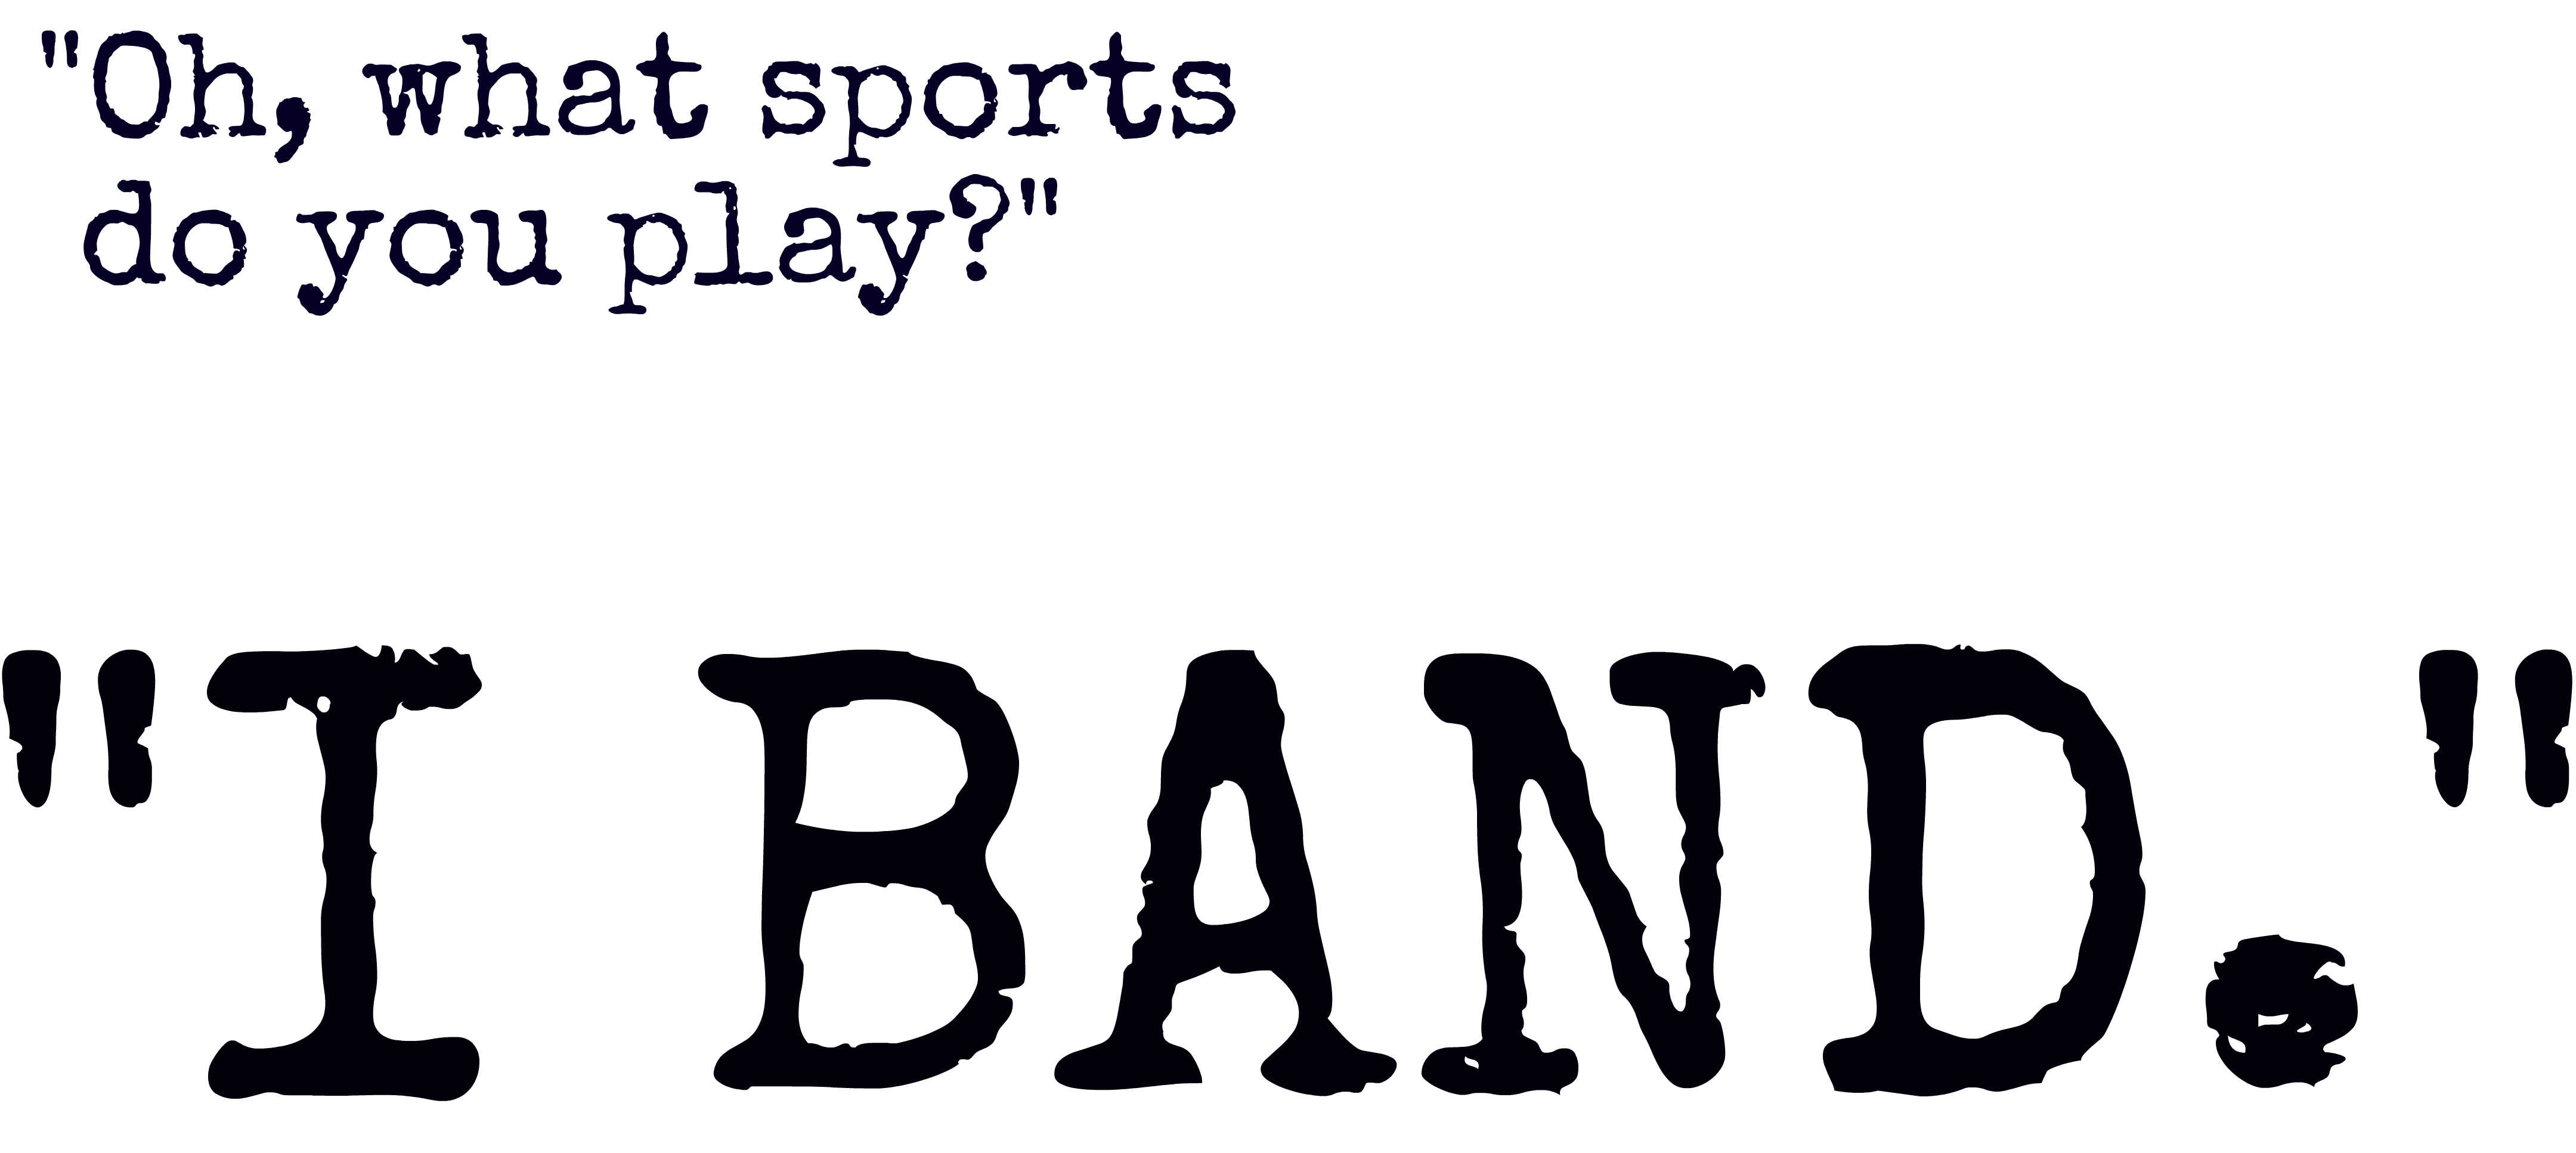 Oh what sports do. Band clipart band geek